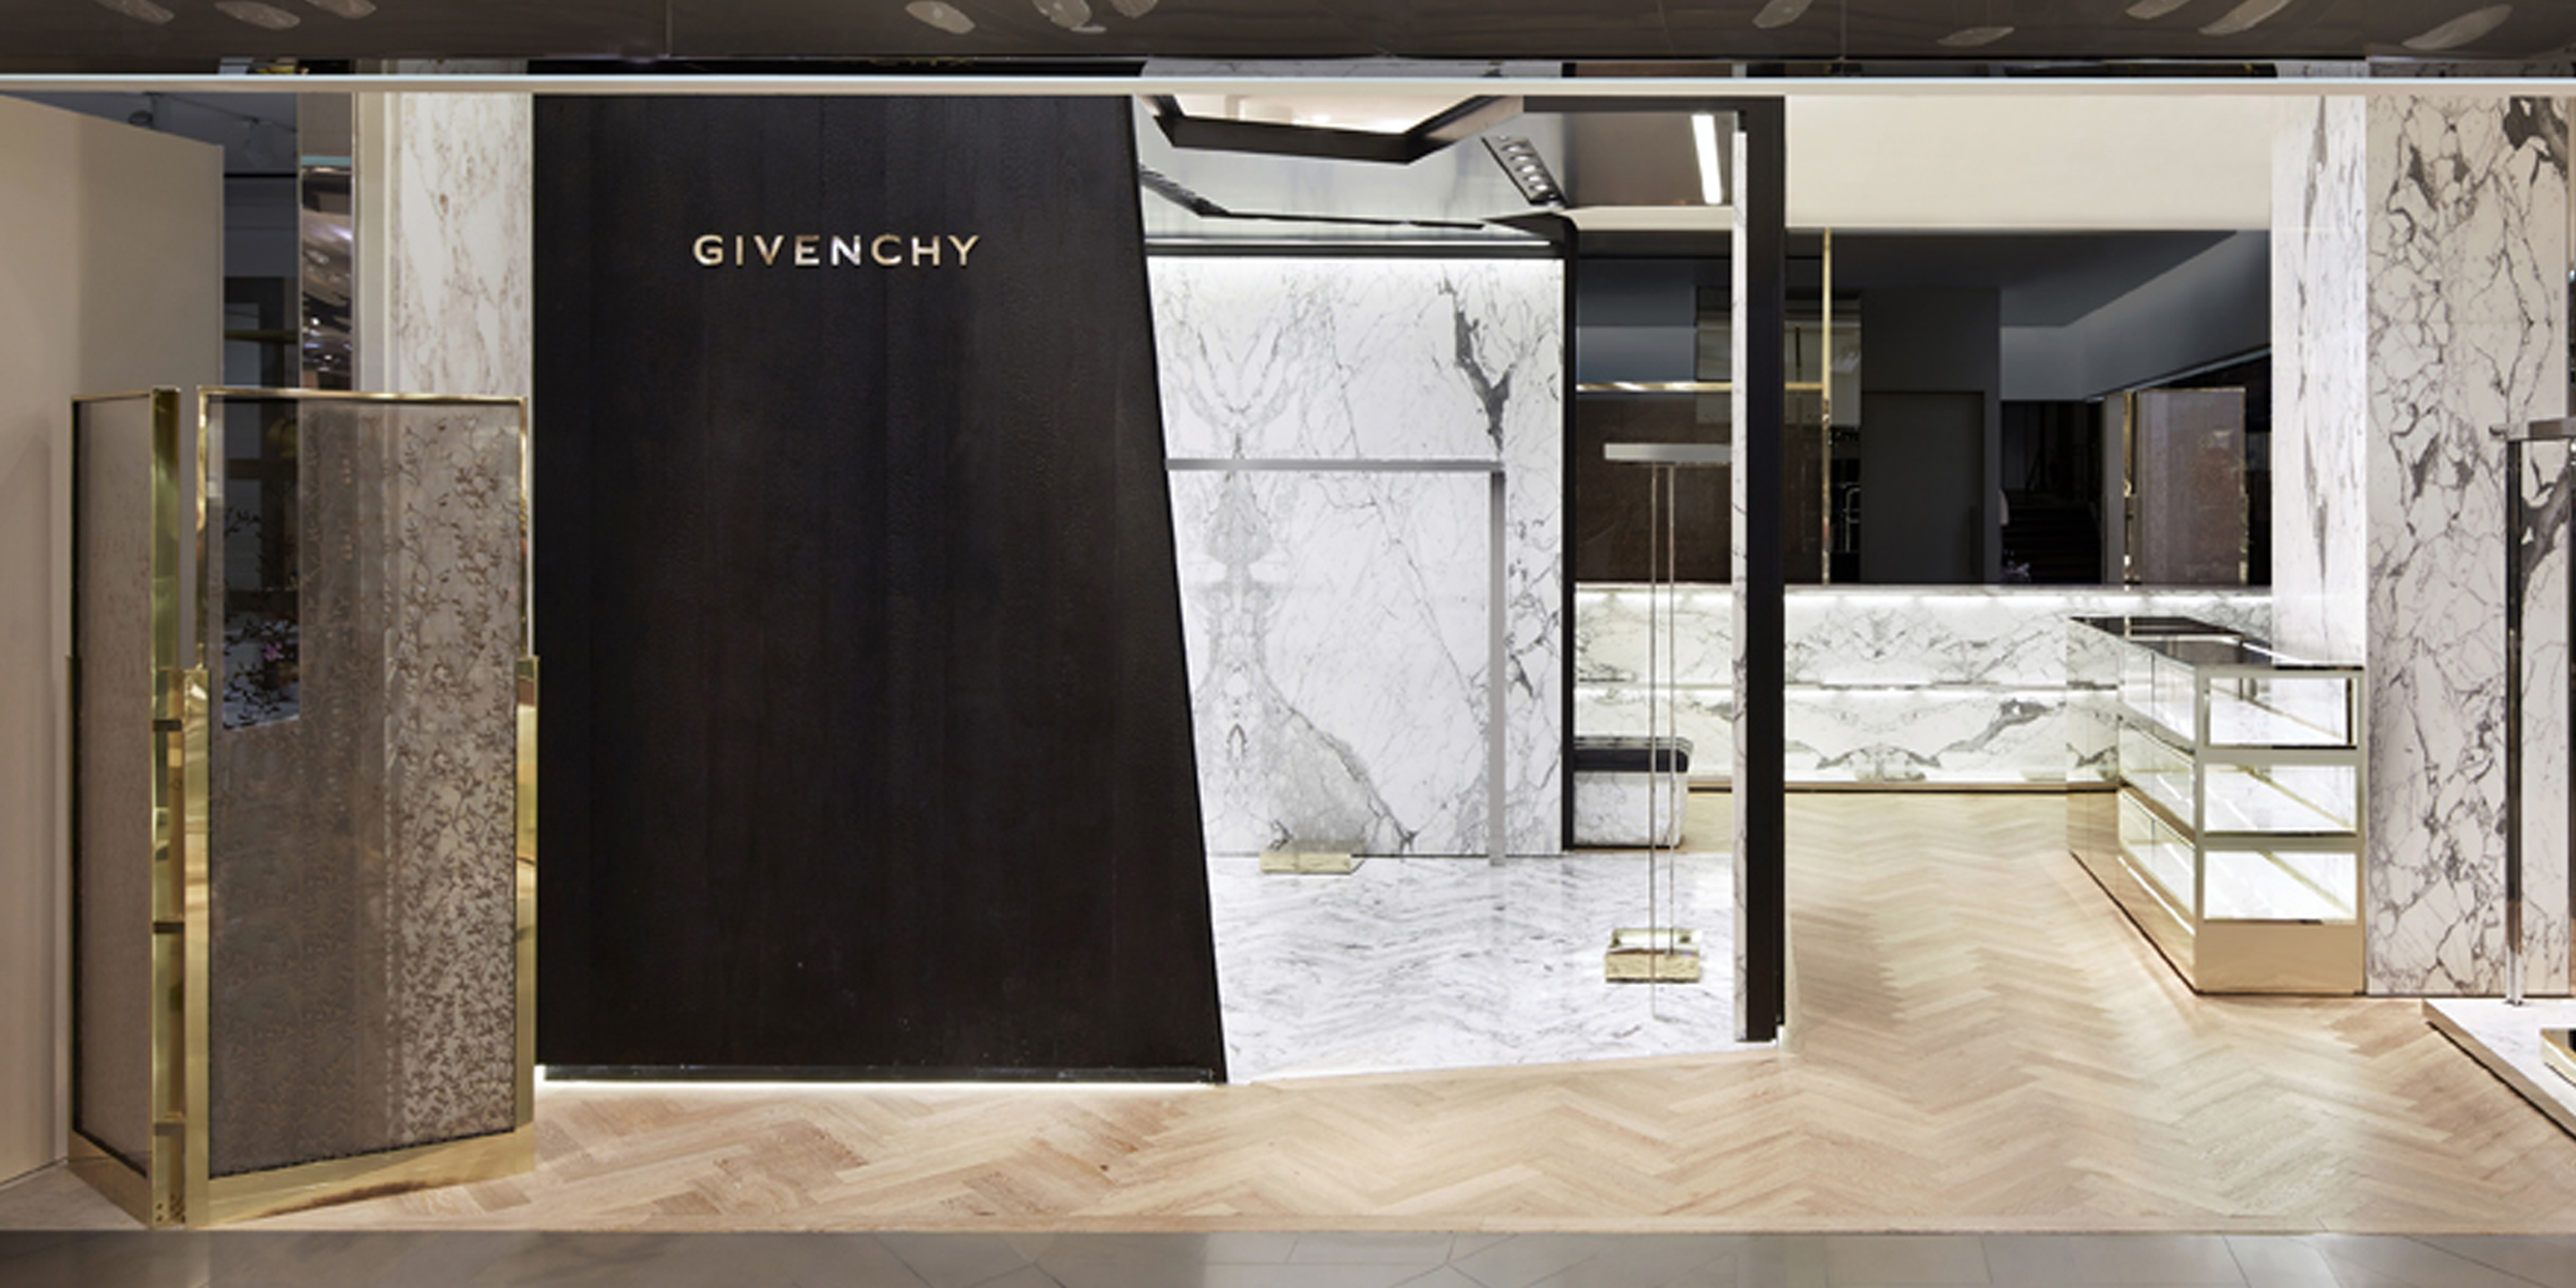 galeries lafayette haussmann givenchy paris. Black Bedroom Furniture Sets. Home Design Ideas